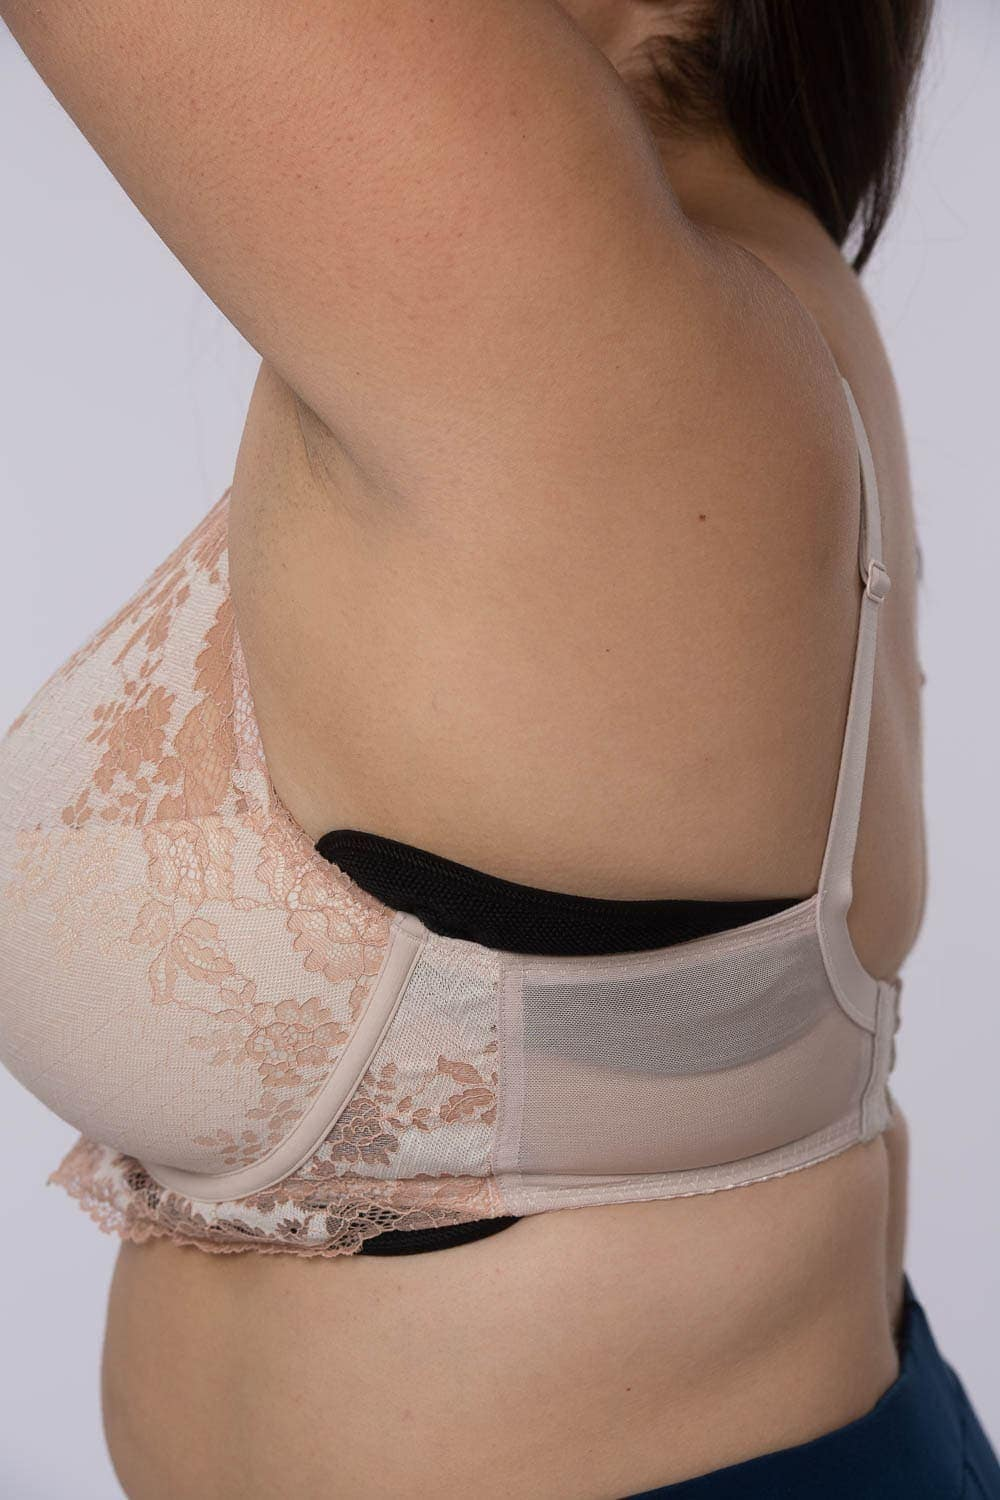 Sweat Liner | Breast Sweat Pads and Bra Liners | Chaffree